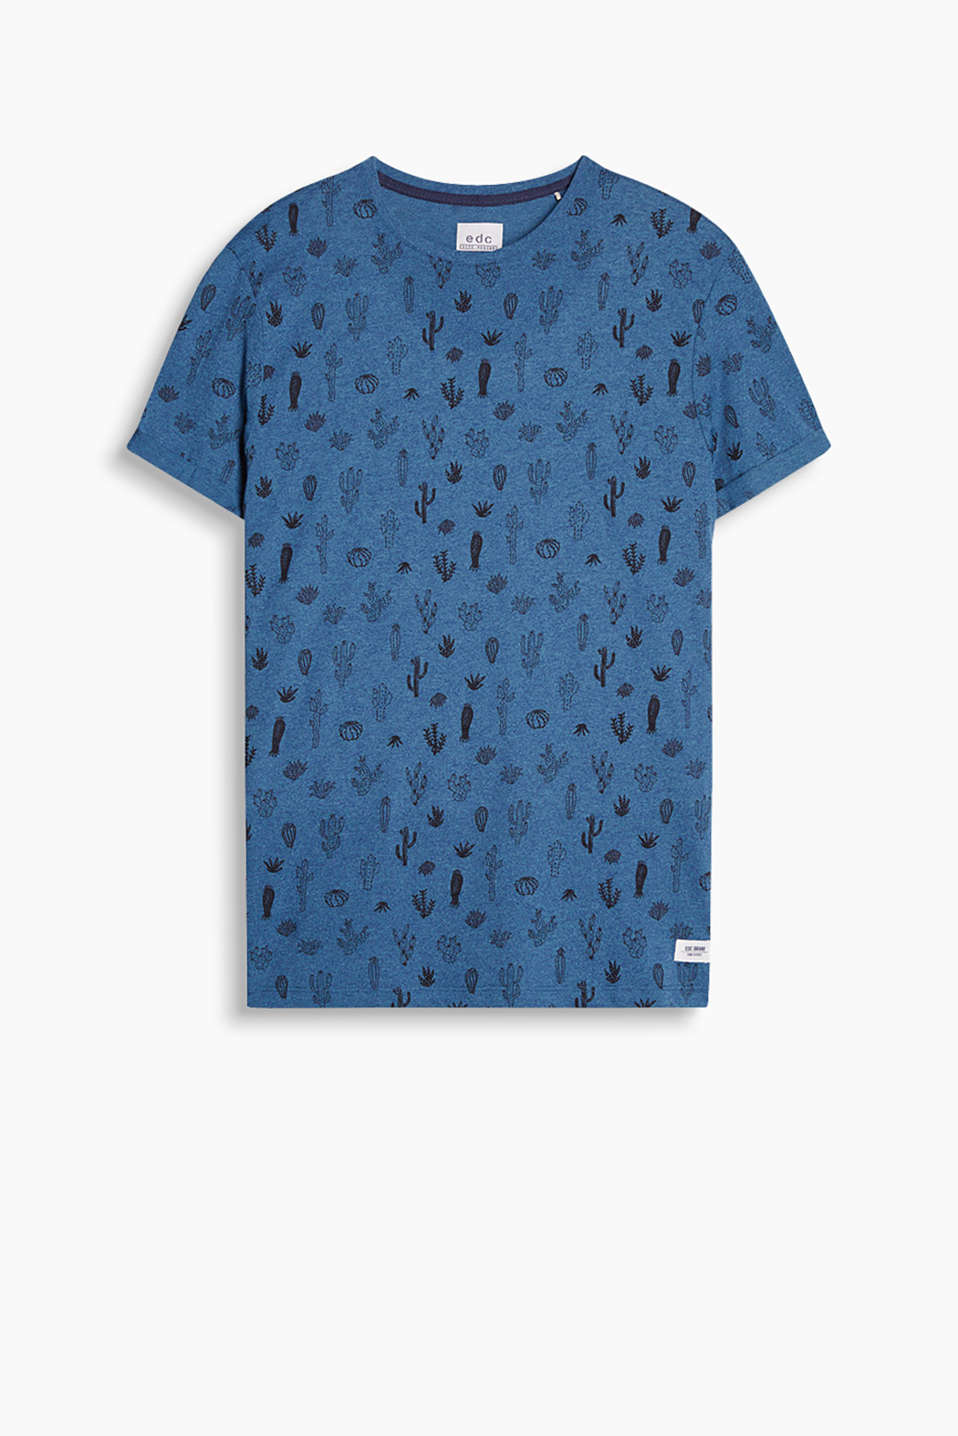 En doux coton mélangé : t-shirt à imprimé all-over